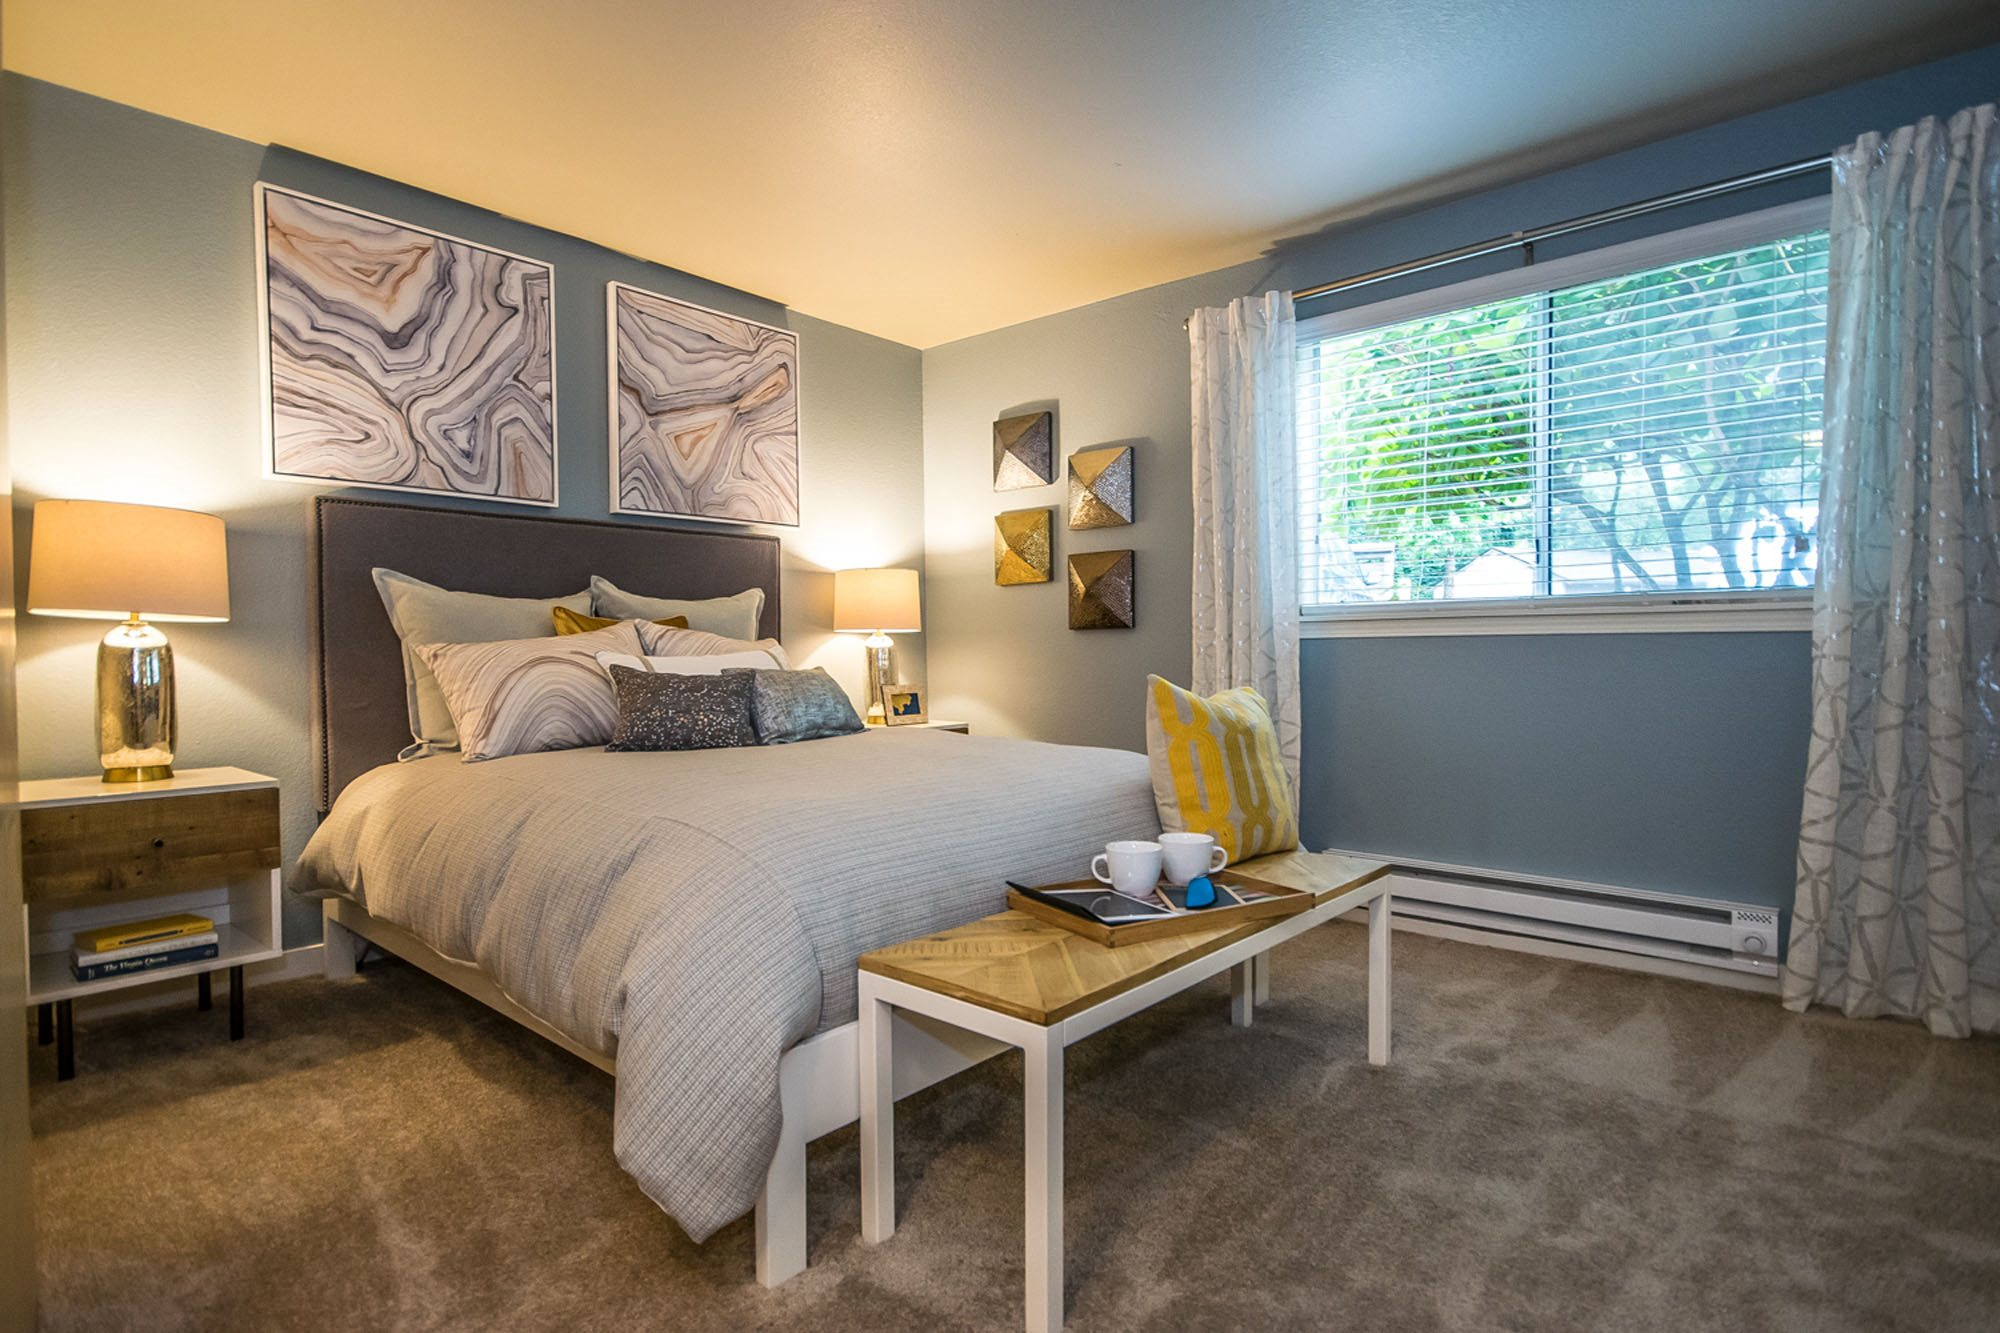 Bedroom with large window at The Fairways Apartments, Tacoma, WA,98422